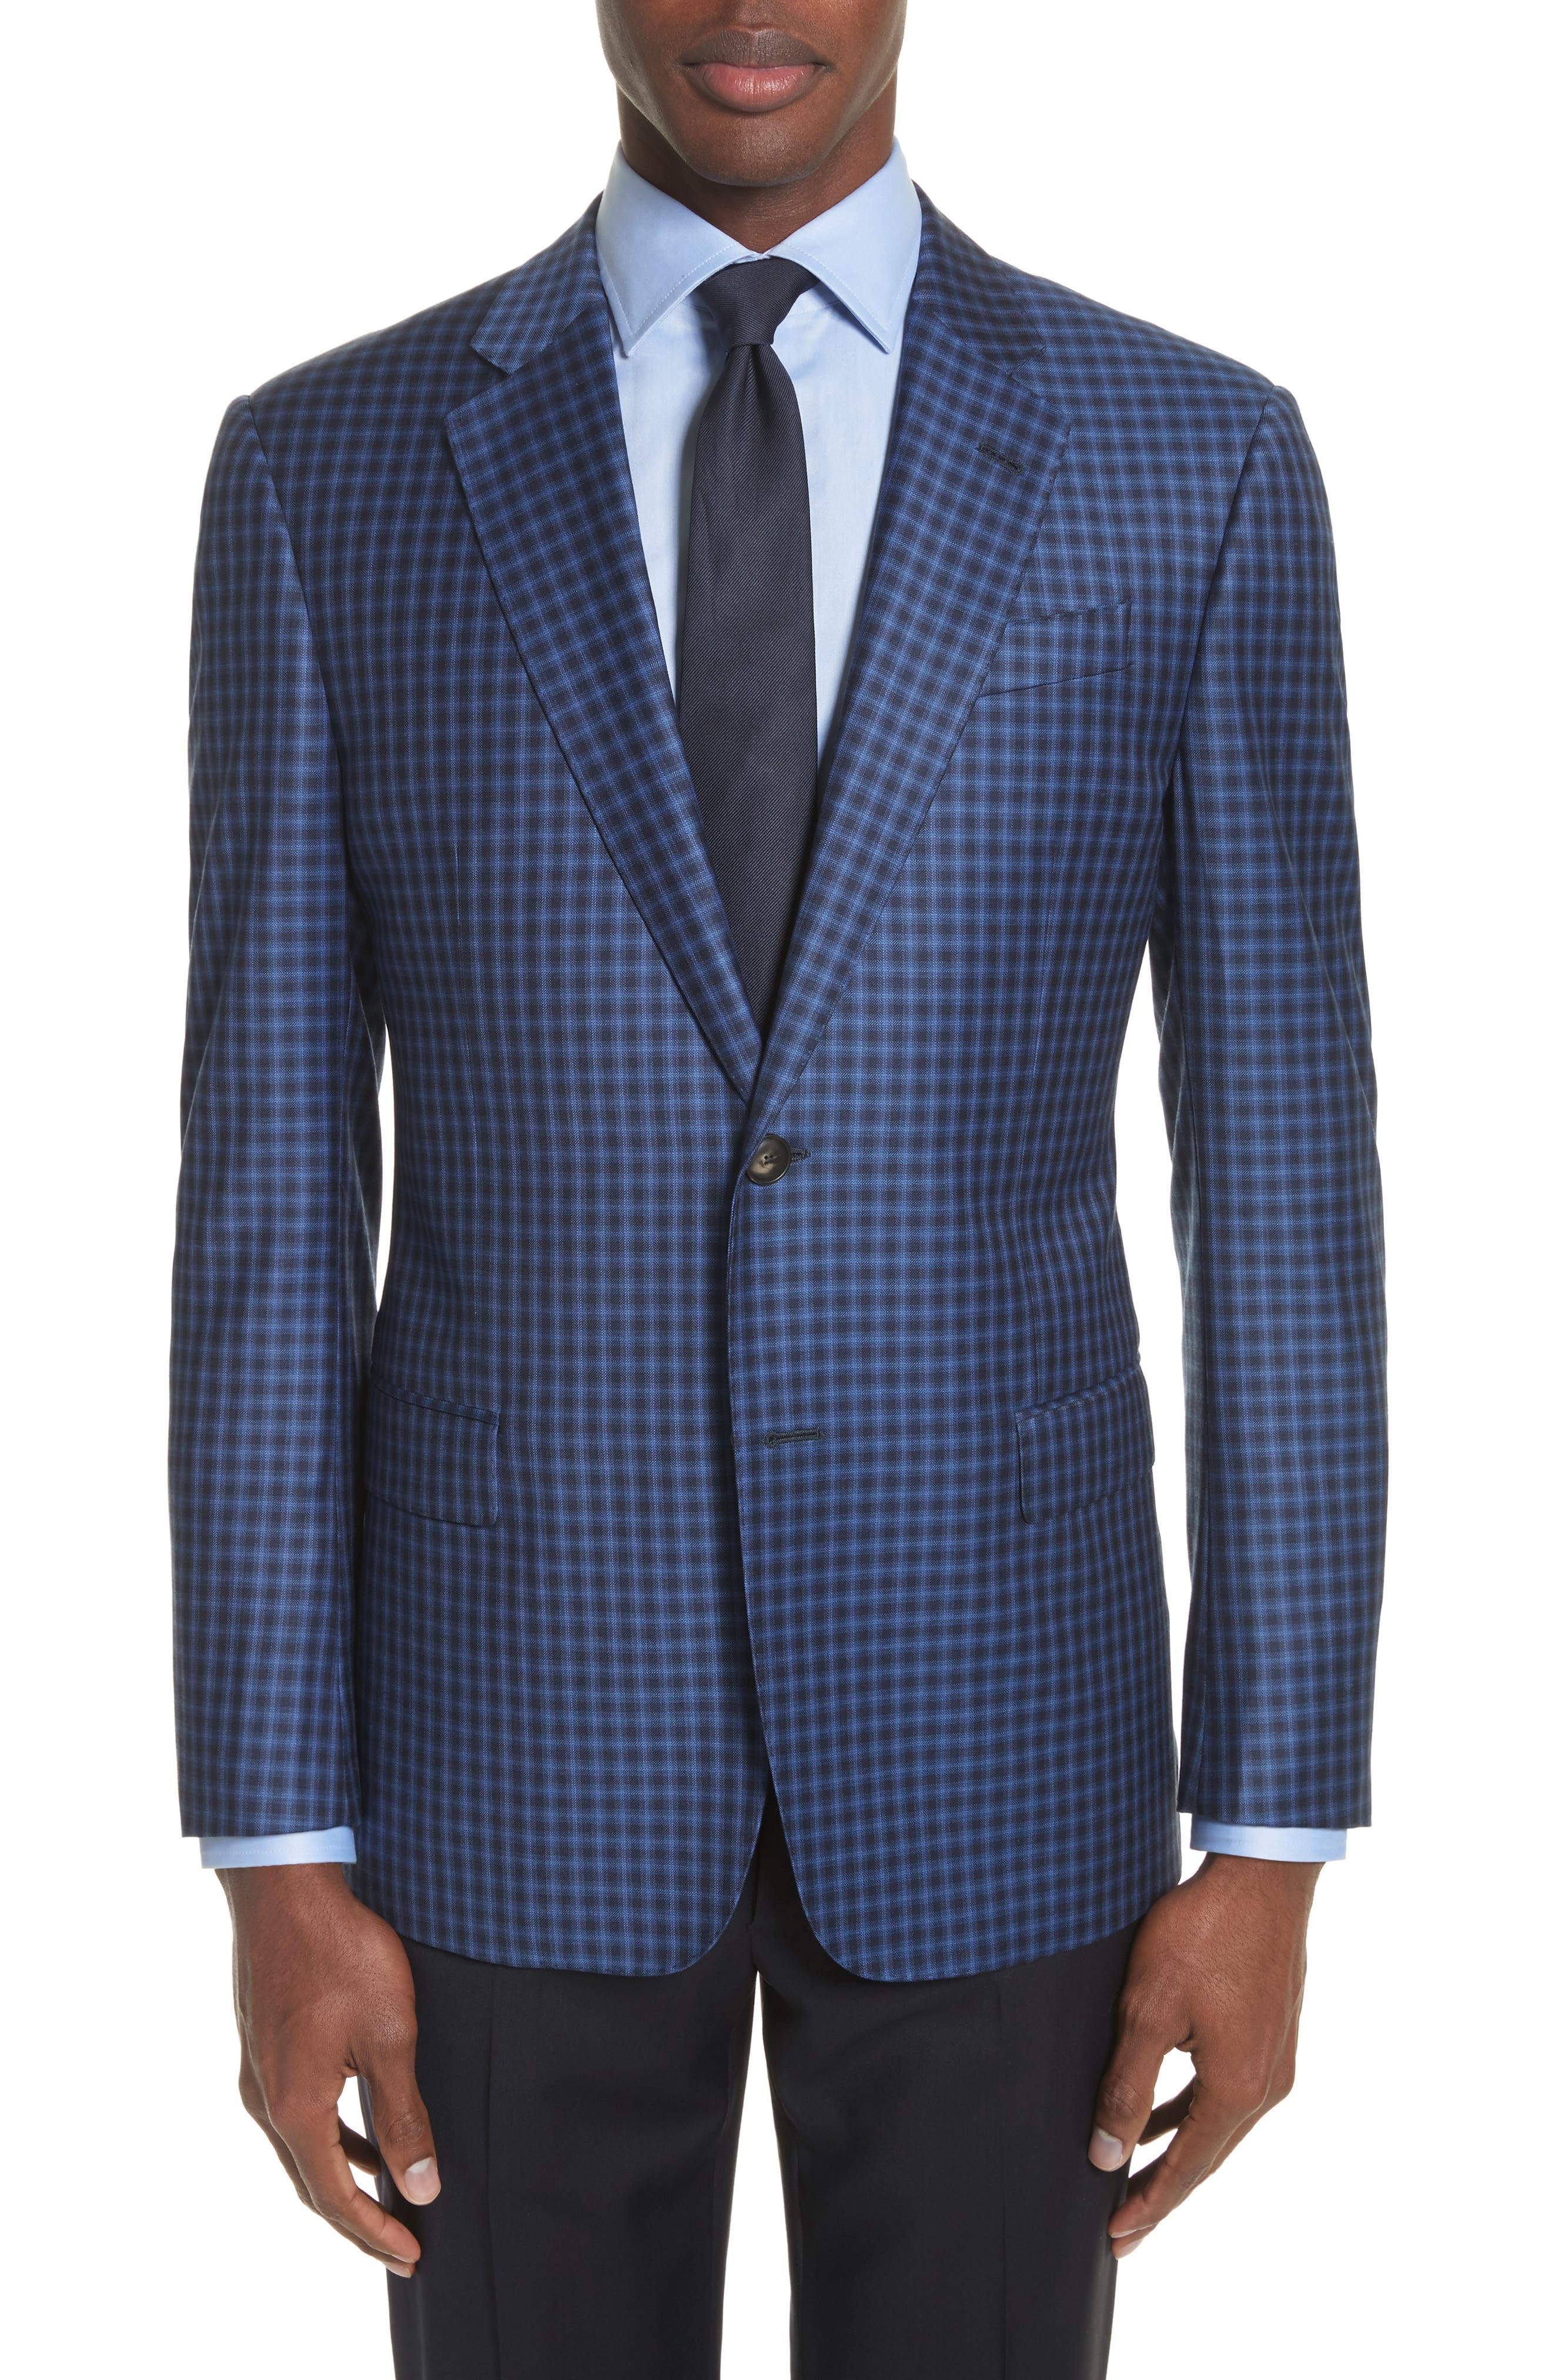 Alternate Image 1 Selected - Emporio Armani G Line Trim Fit Check Wool Sport Coat